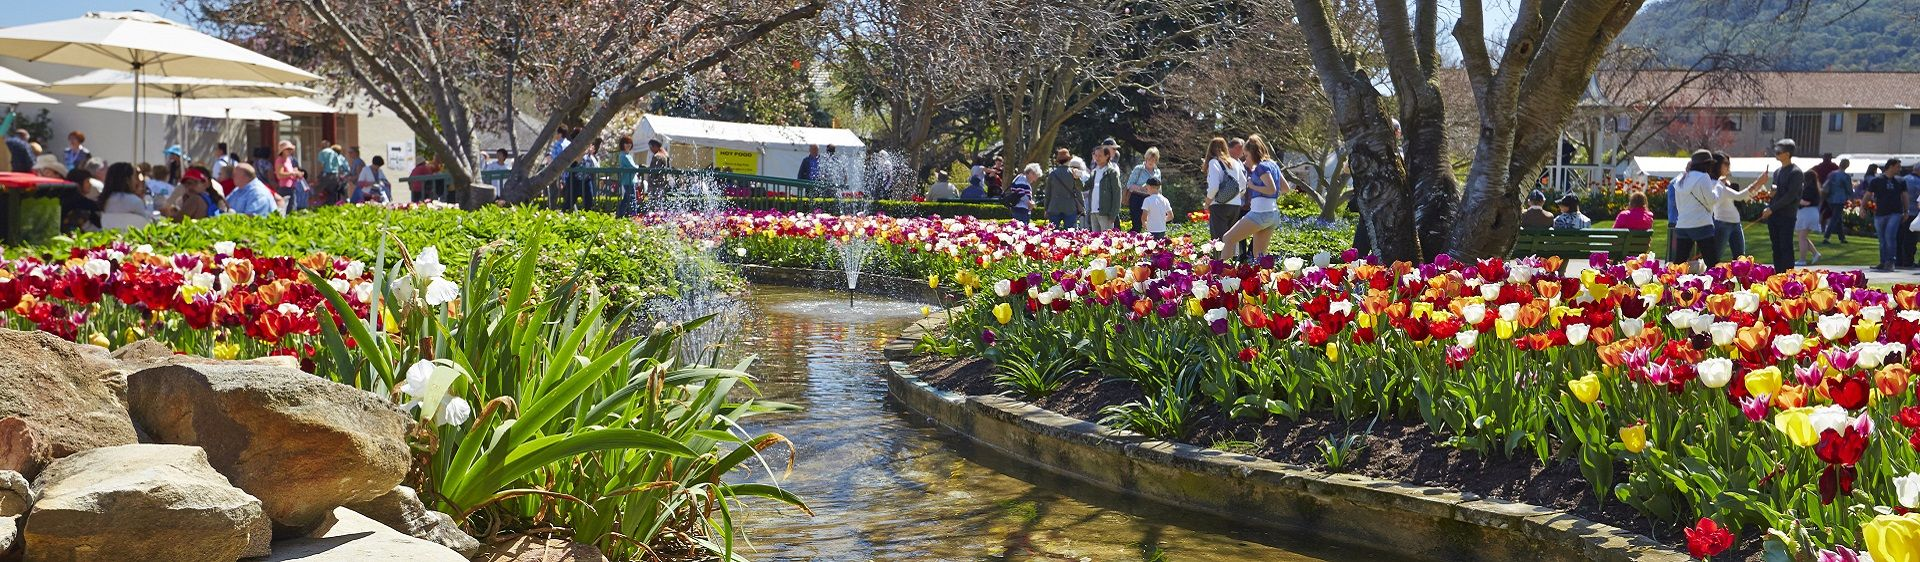 Tulip Time Festival in full bloom in Corbetts Garden, Bowral